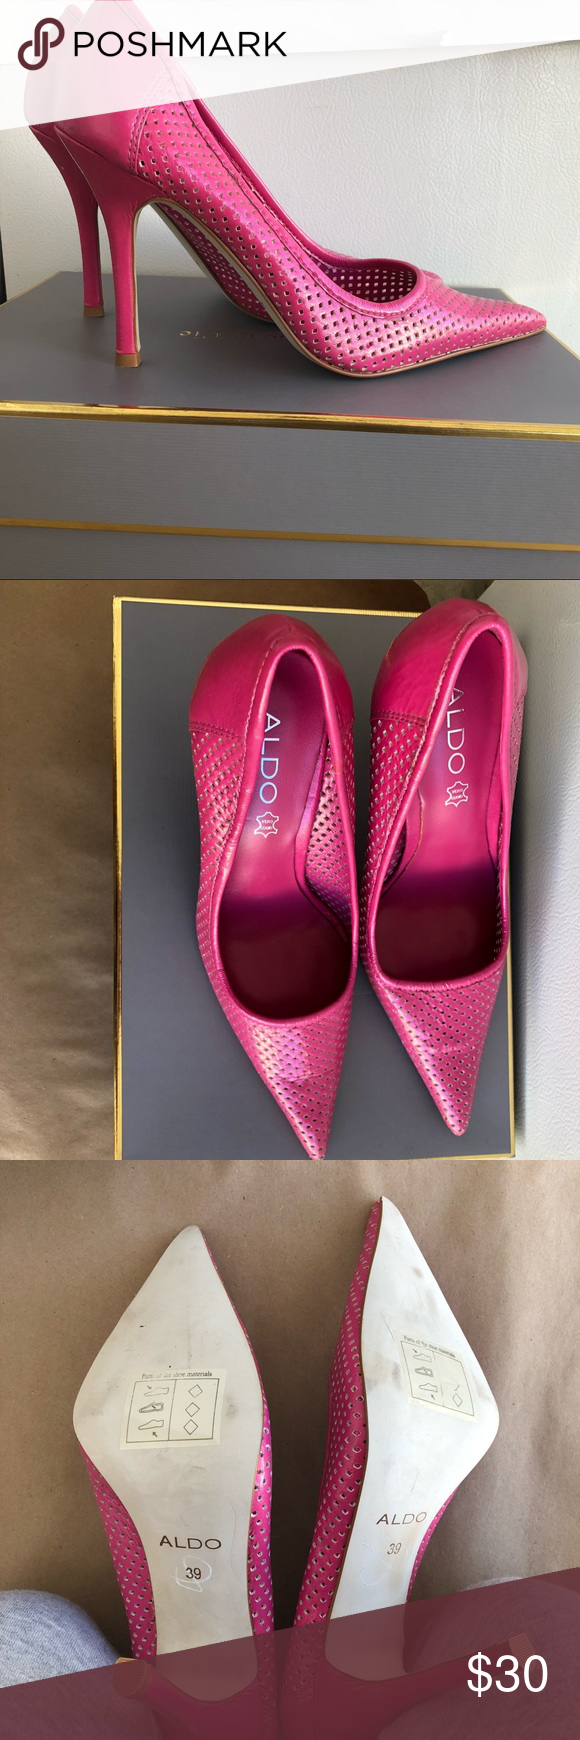 918e052d8e30 EUC Aldo Perforated Hot Pink Heels -EUC -Bold color -Heel height in photos  -See Aldo size chart for size reference.(size 39